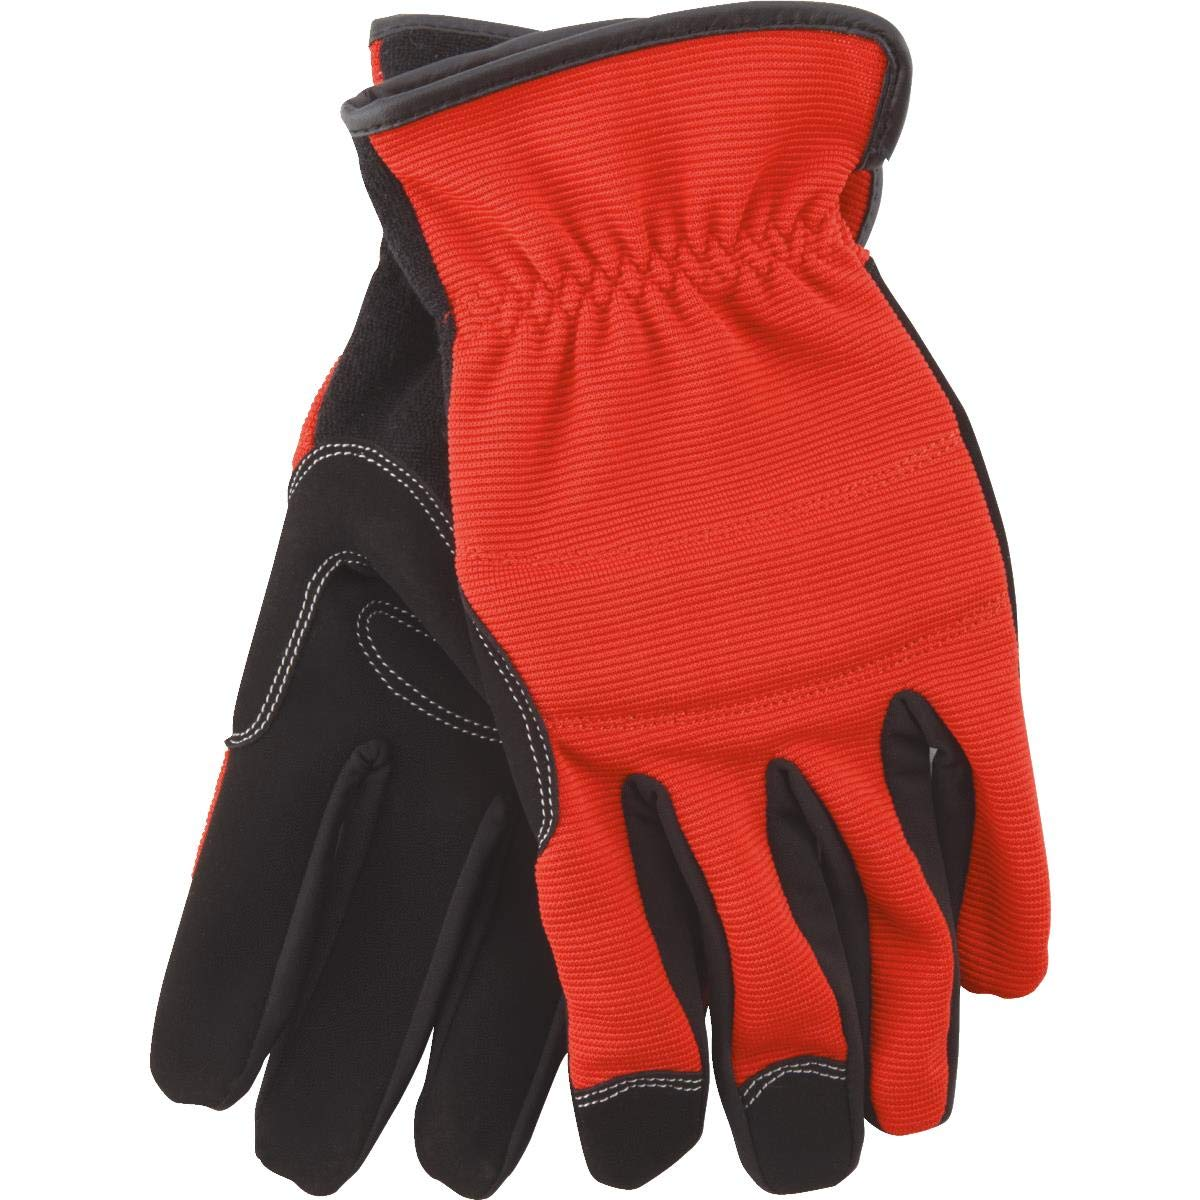 DO IT BEST GS 706376 Shirr Wrist A/P Glove Medium by DO IT BEST GS